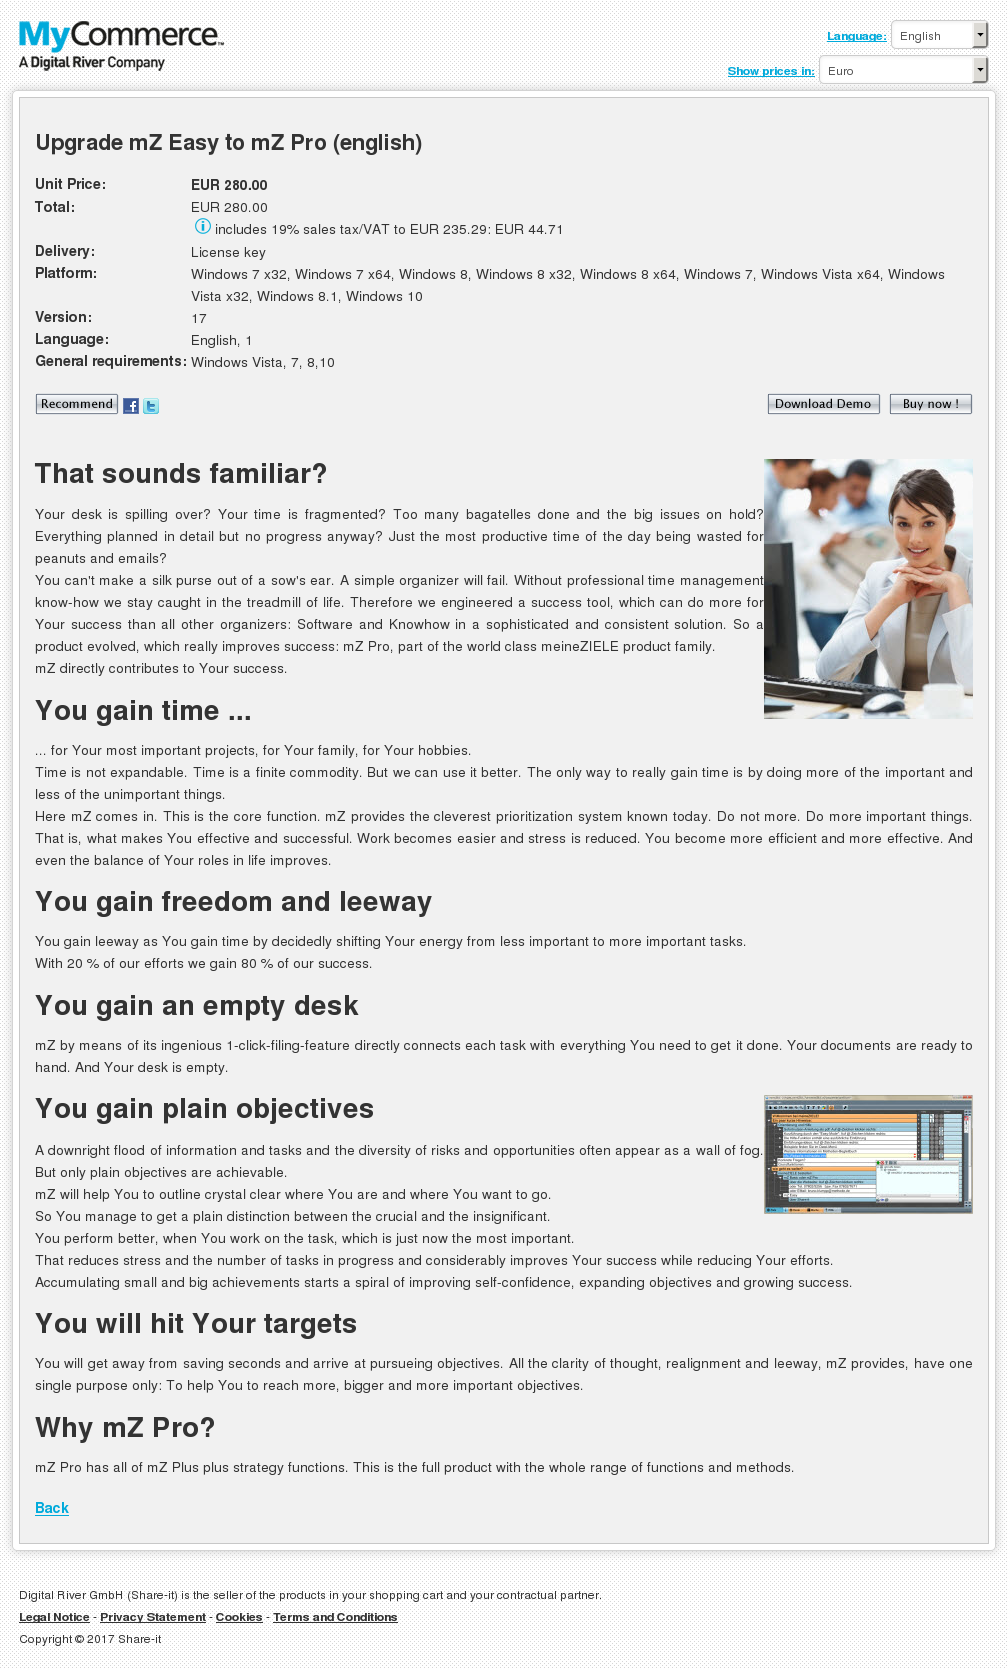 Upgrade Easy Pro English Download